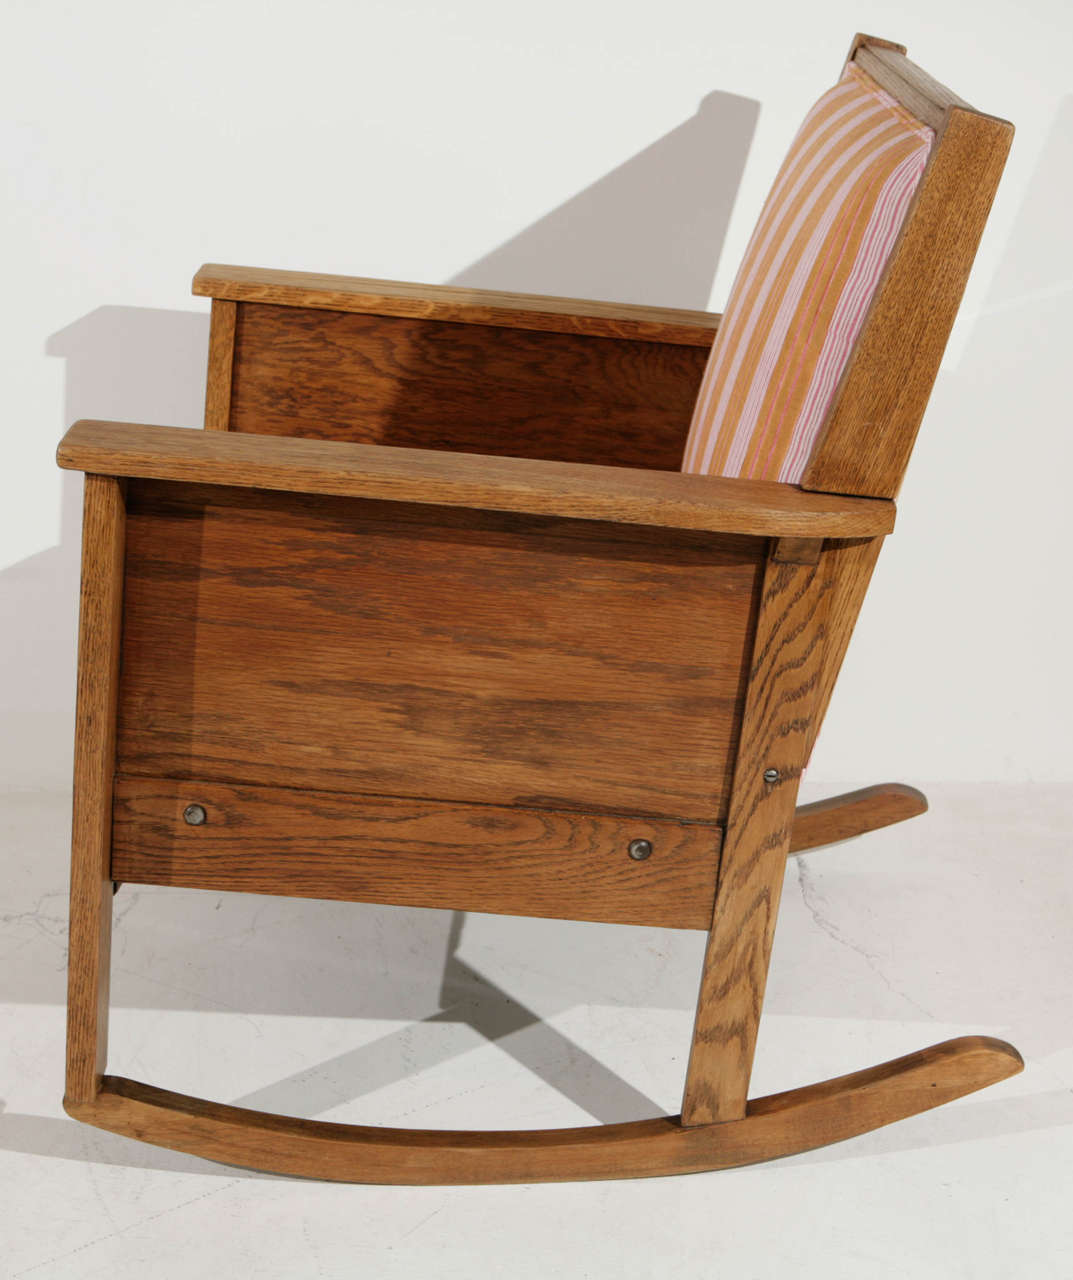 Late 19th Century American Craftsman Mission Style Oak